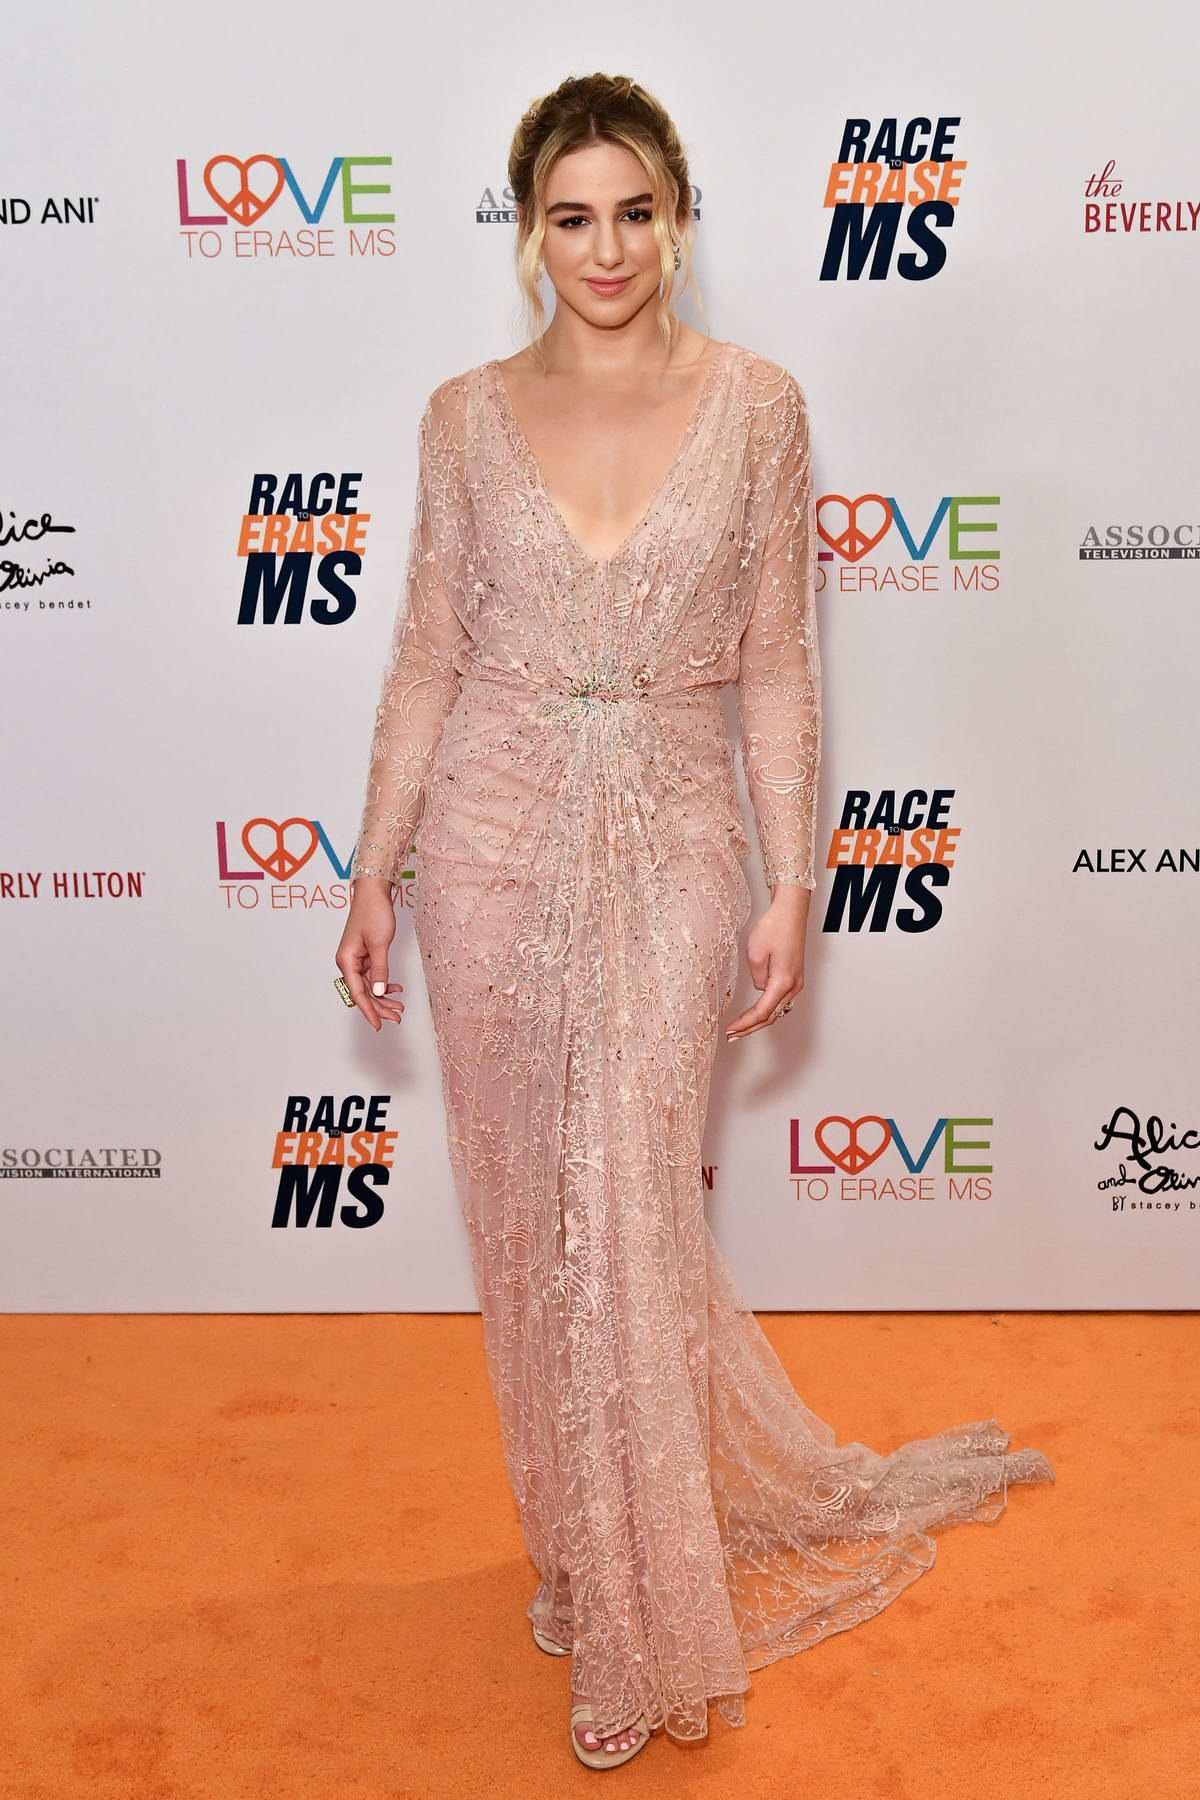 Chloe Lukasiak attends the 26th Annual Race to Erase MS GALA held at the Beverly Hilton Hotel in Beverly Hills, Los Angeles